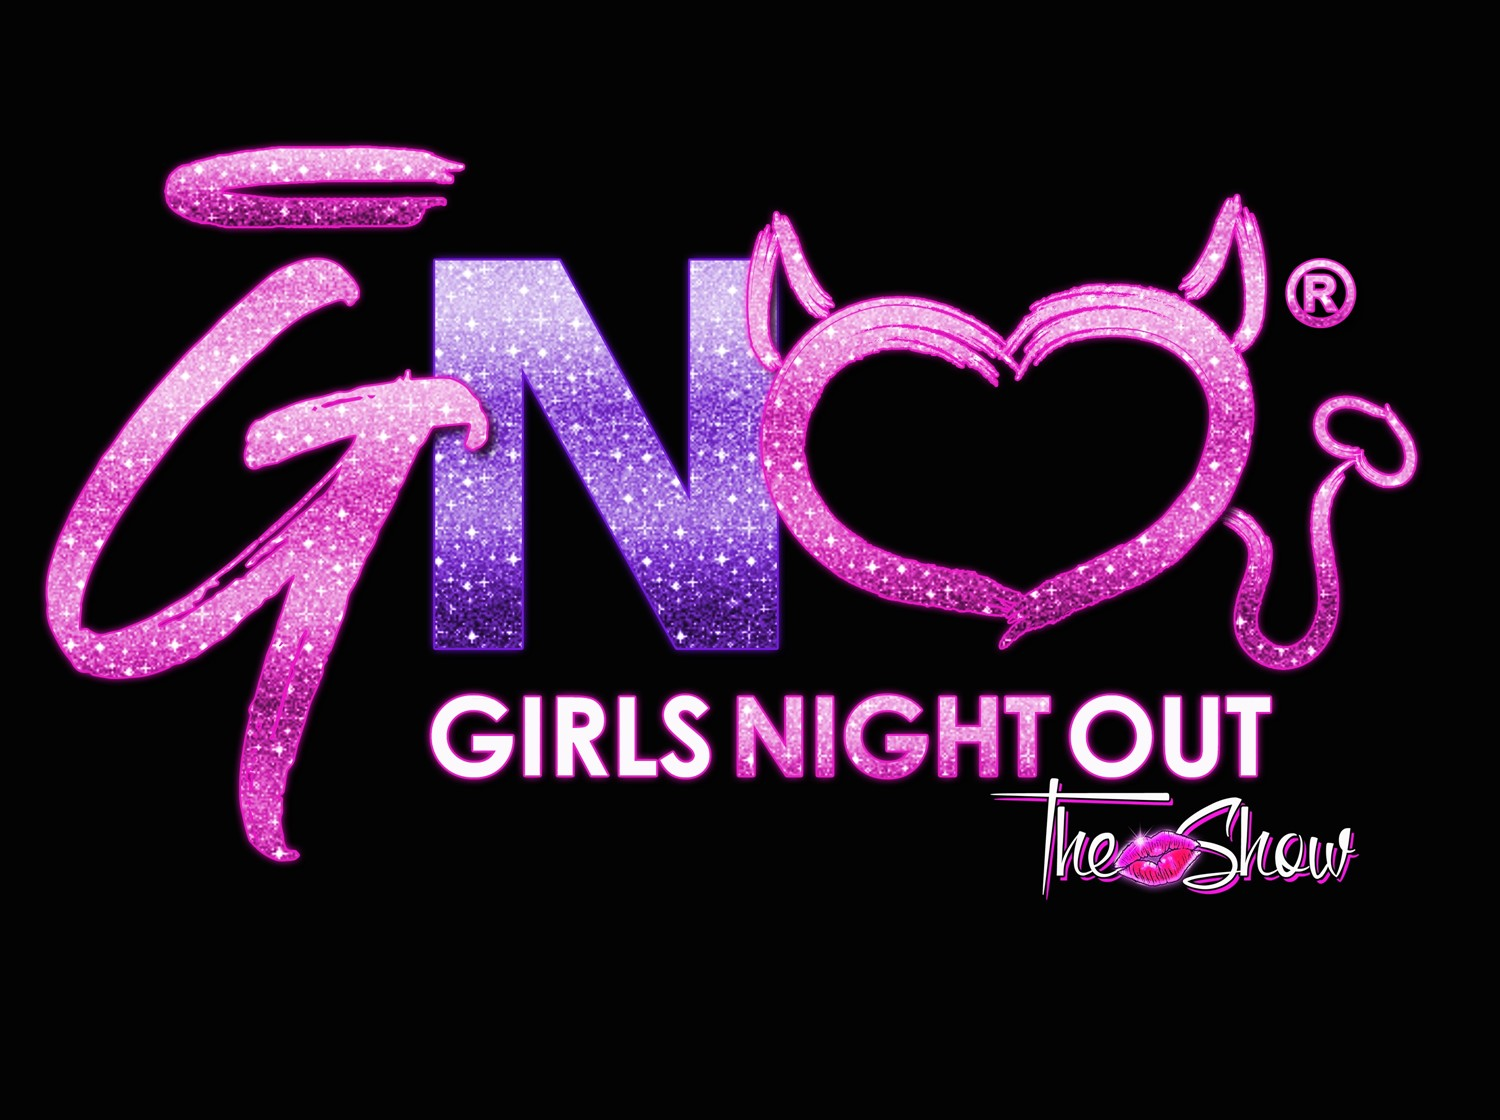 Carl's Tavern (21+) New Haven, IN on May 13, 20:00@Carl's Tavern - Buy tickets and Get information on Girls Night Out the Show tickets.girlsnightouttheshow.com